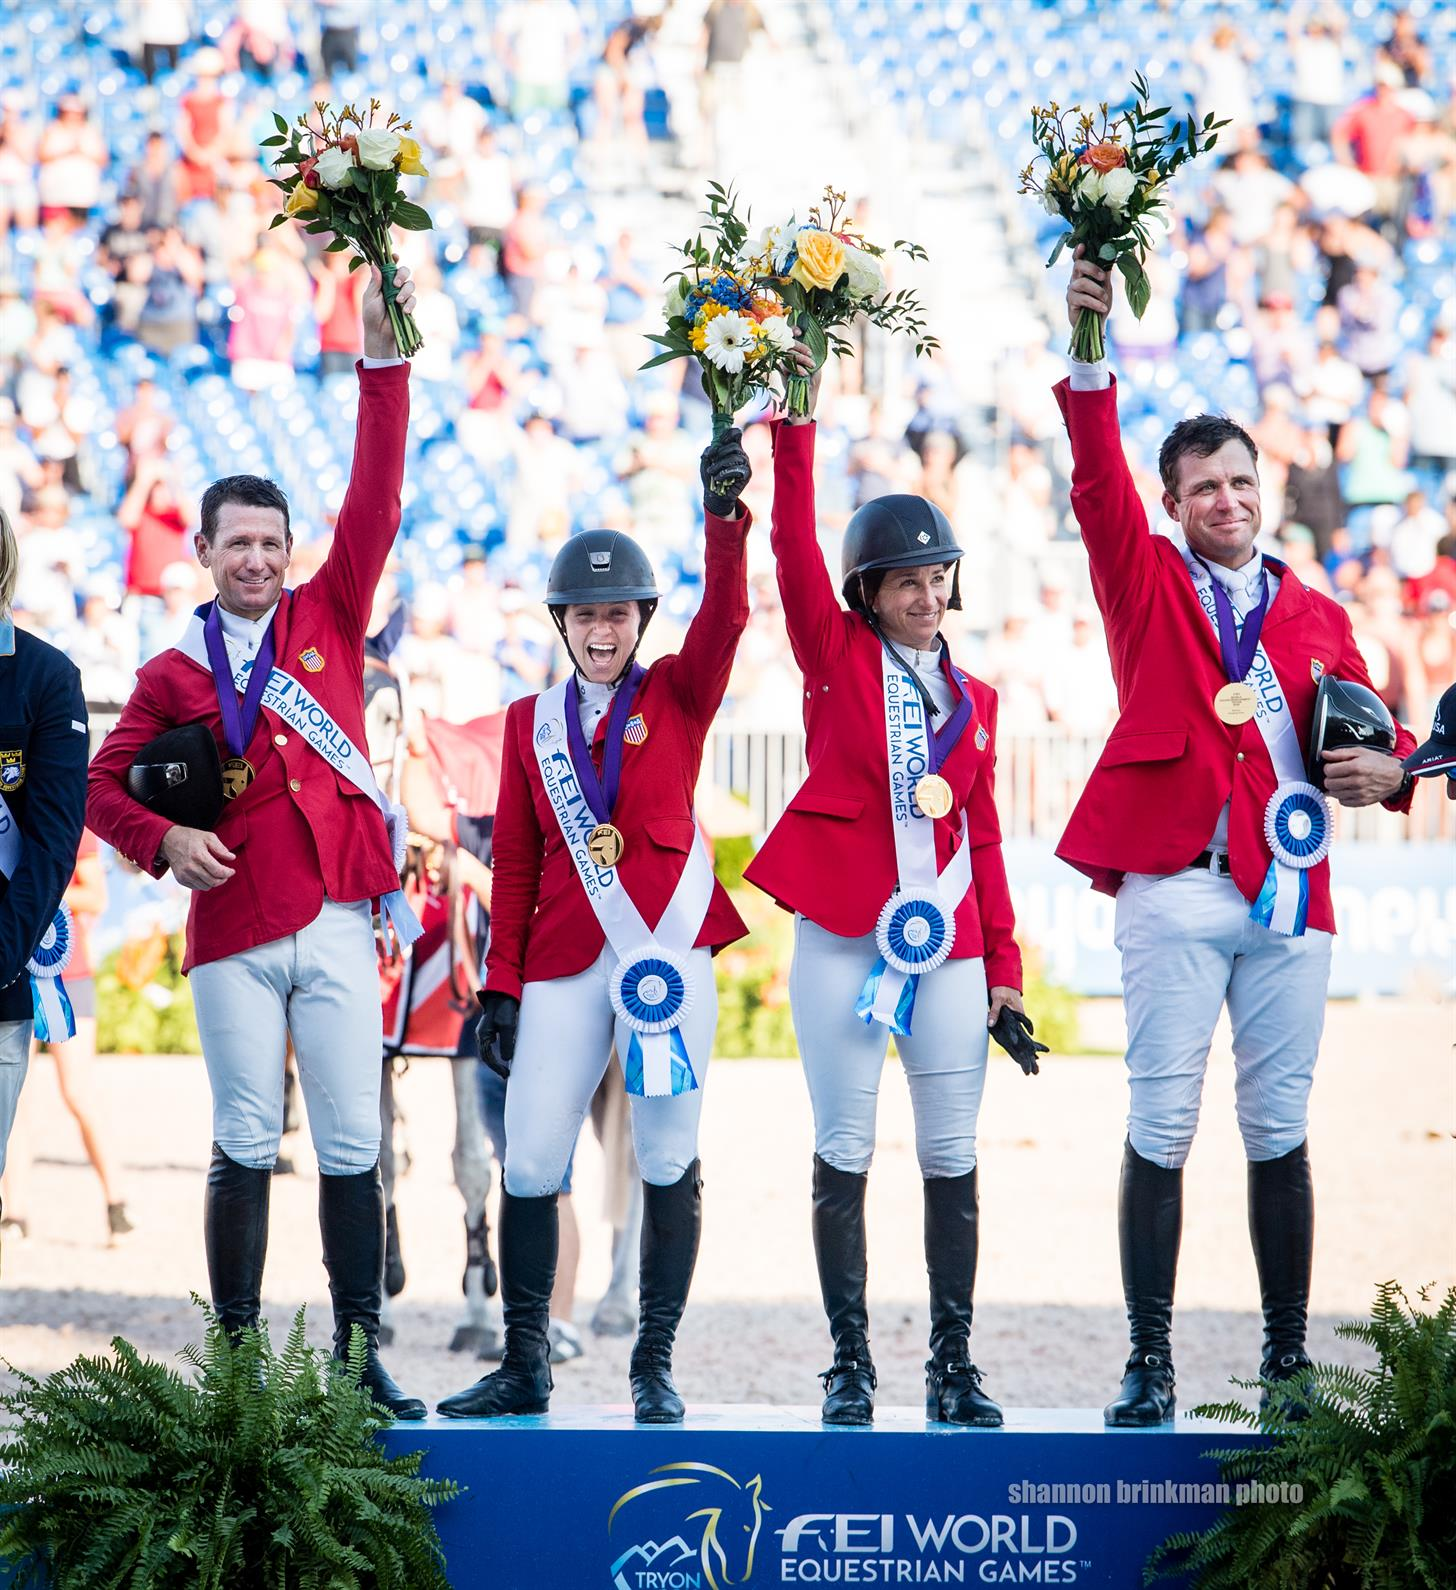 NetJets® U.S. Jumping Team Scores Olympic Qualification, Earns Historic Gold Medal in Jump-Off at FEI World Equestrian Games™ Tryon 2018